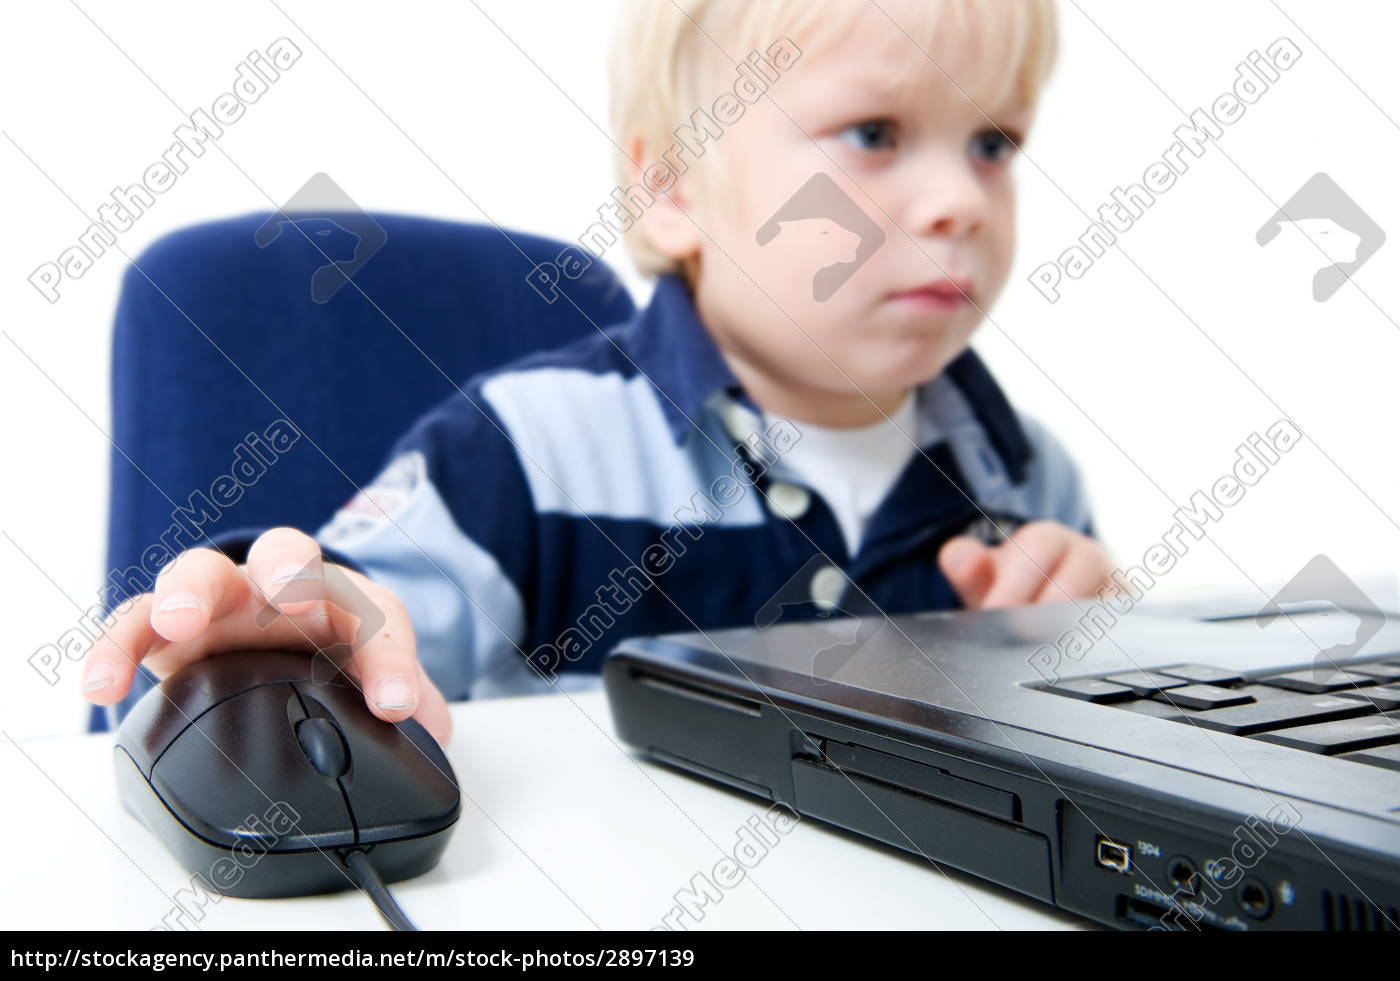 young, boy, using, laptop - 2897139